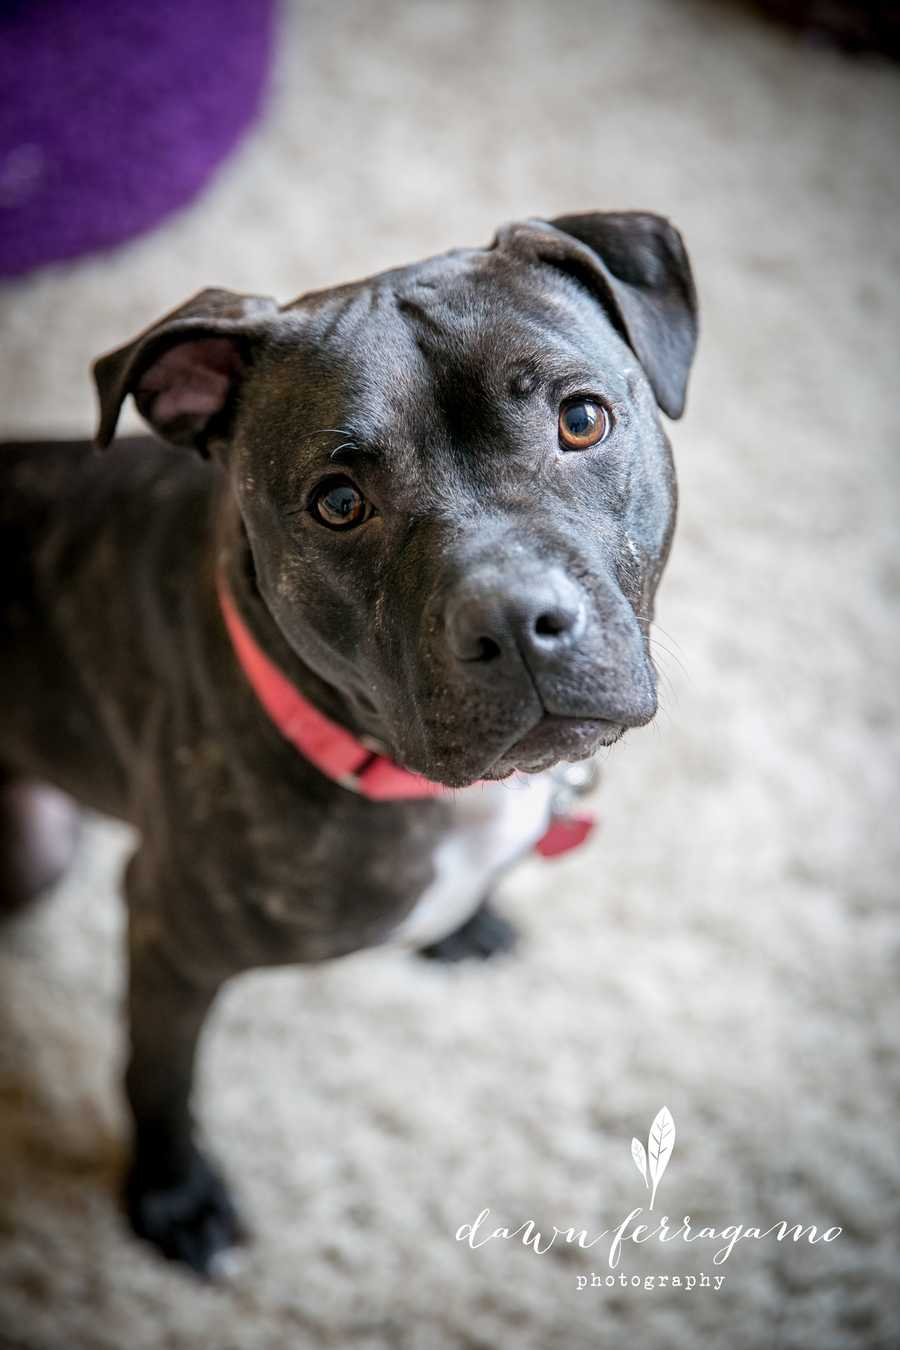 Noell is a 3 year old boxer-pit bull terrier mix. She's a special girl with 3 legs (tripawd), but that doesn't stop her! She enjoys going for walks with her foster mom and playing with her toys! MORE